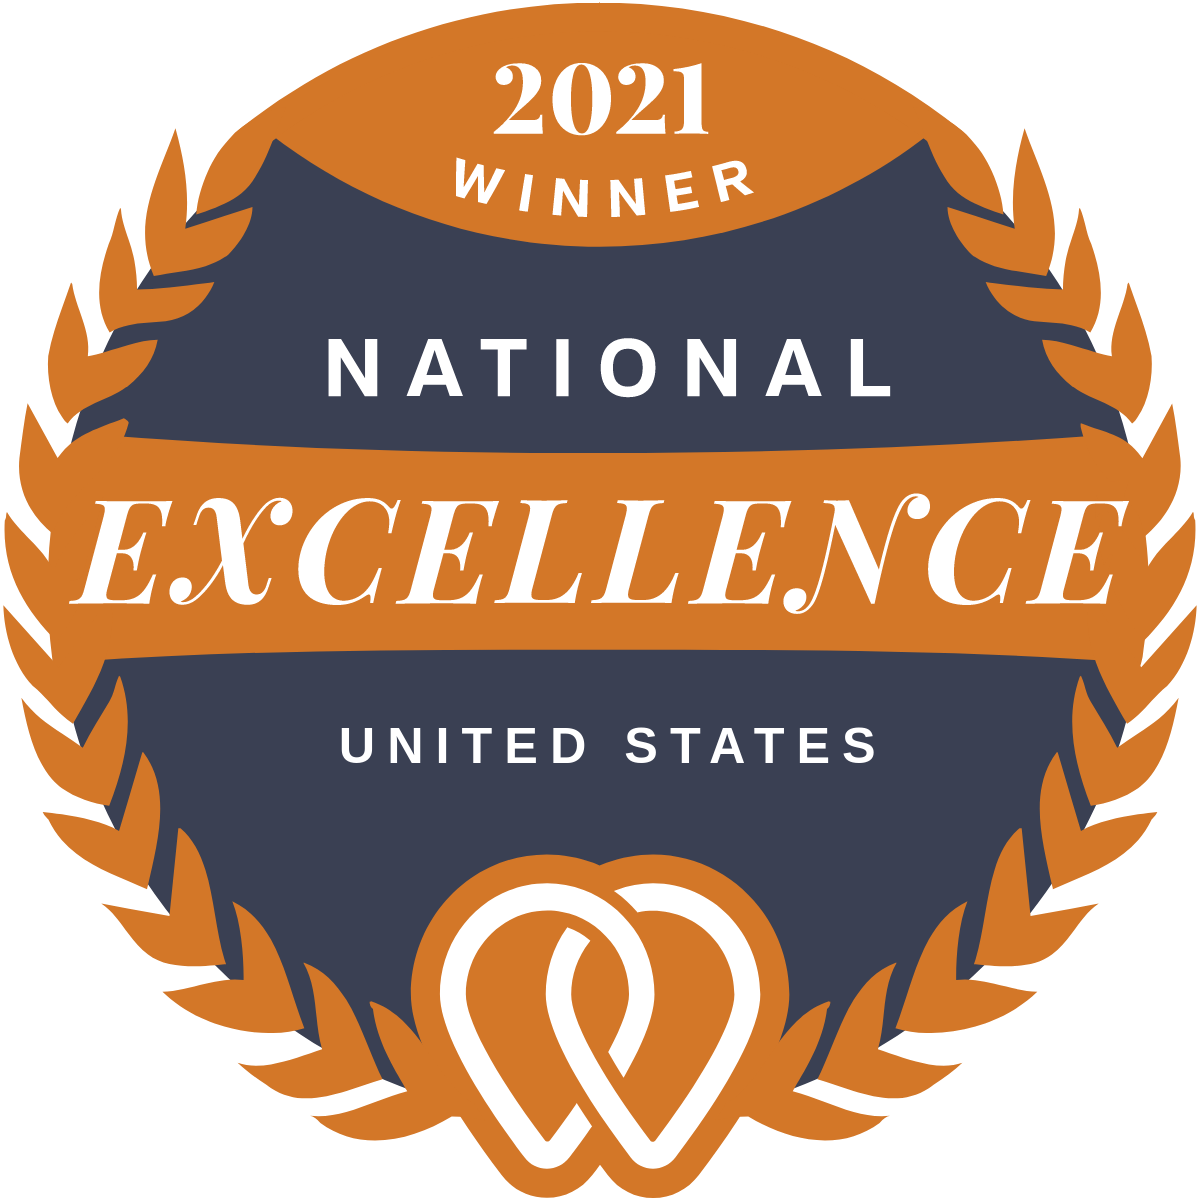 Thrive-National-Excellence-Awards-2021-in-United-States.png